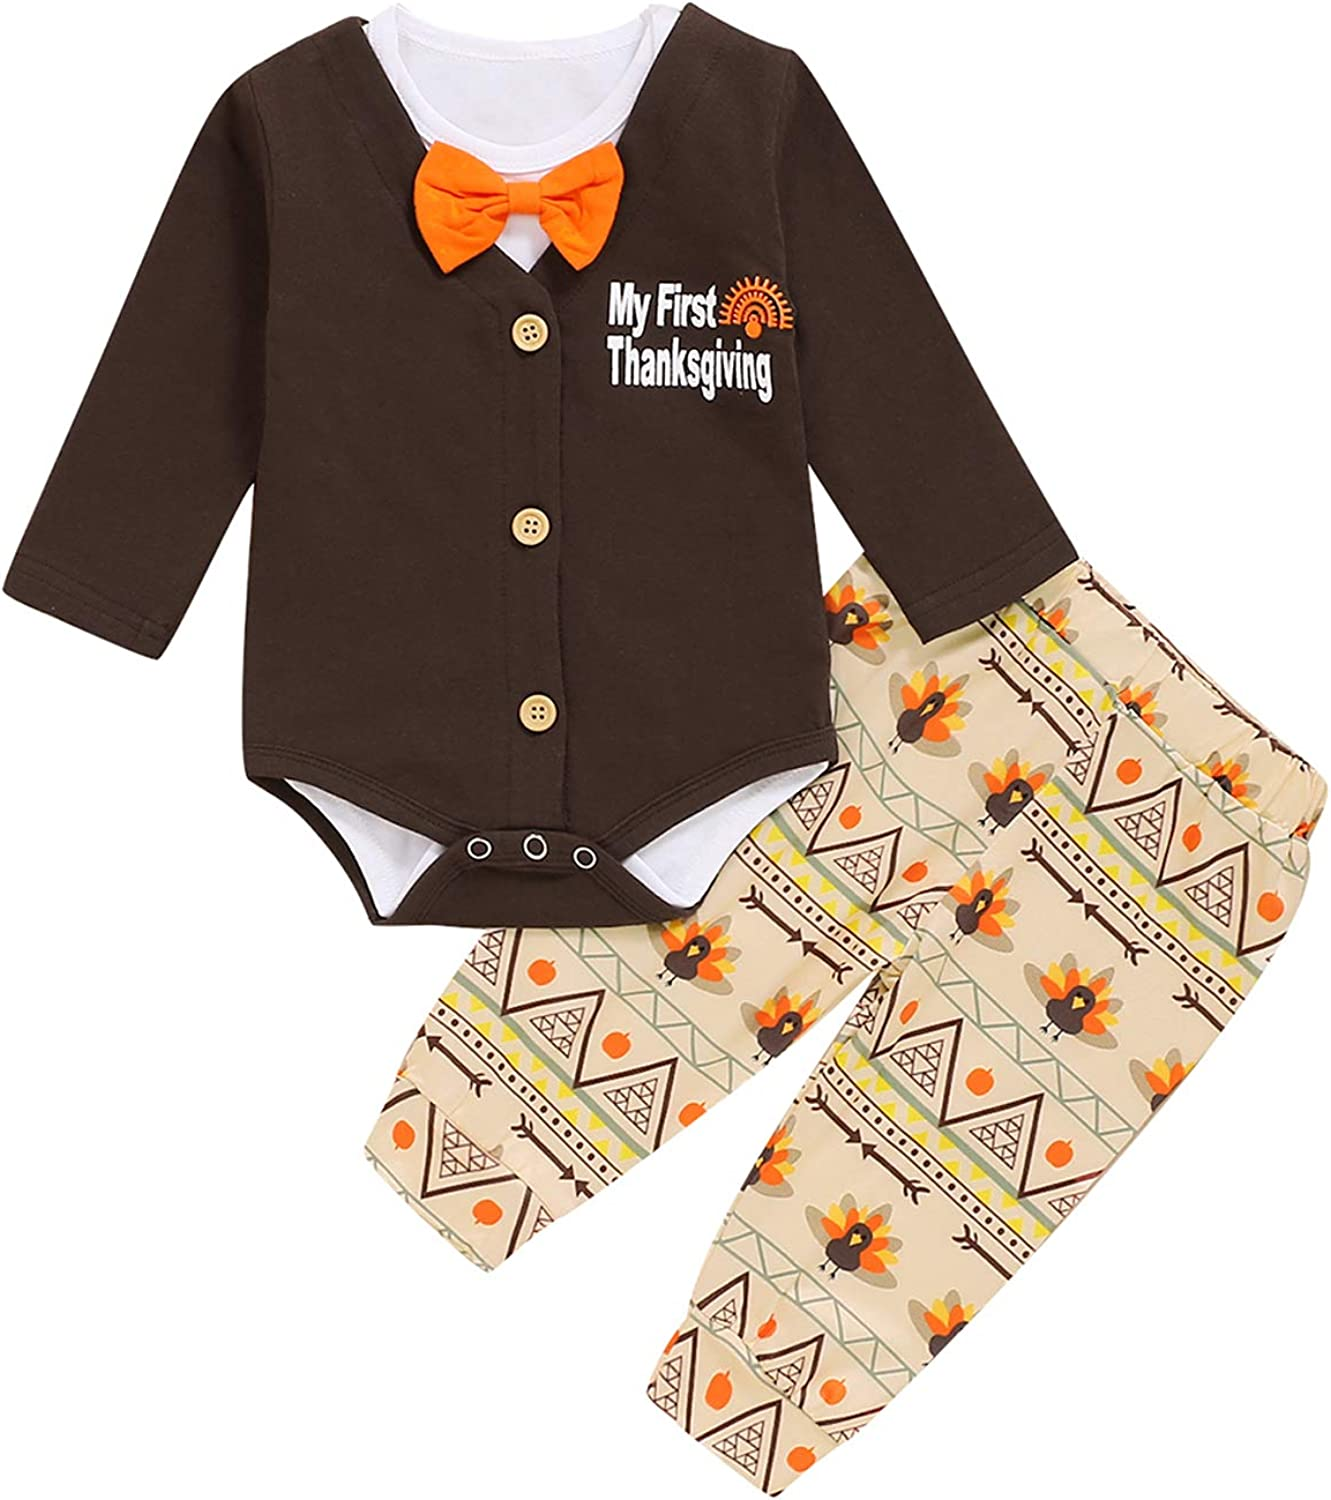 Shalofer Baby Boy My First Thanksgiving Bodysuit Infant Turkey Pant Set and Coat (Brown01,3-6 Months)